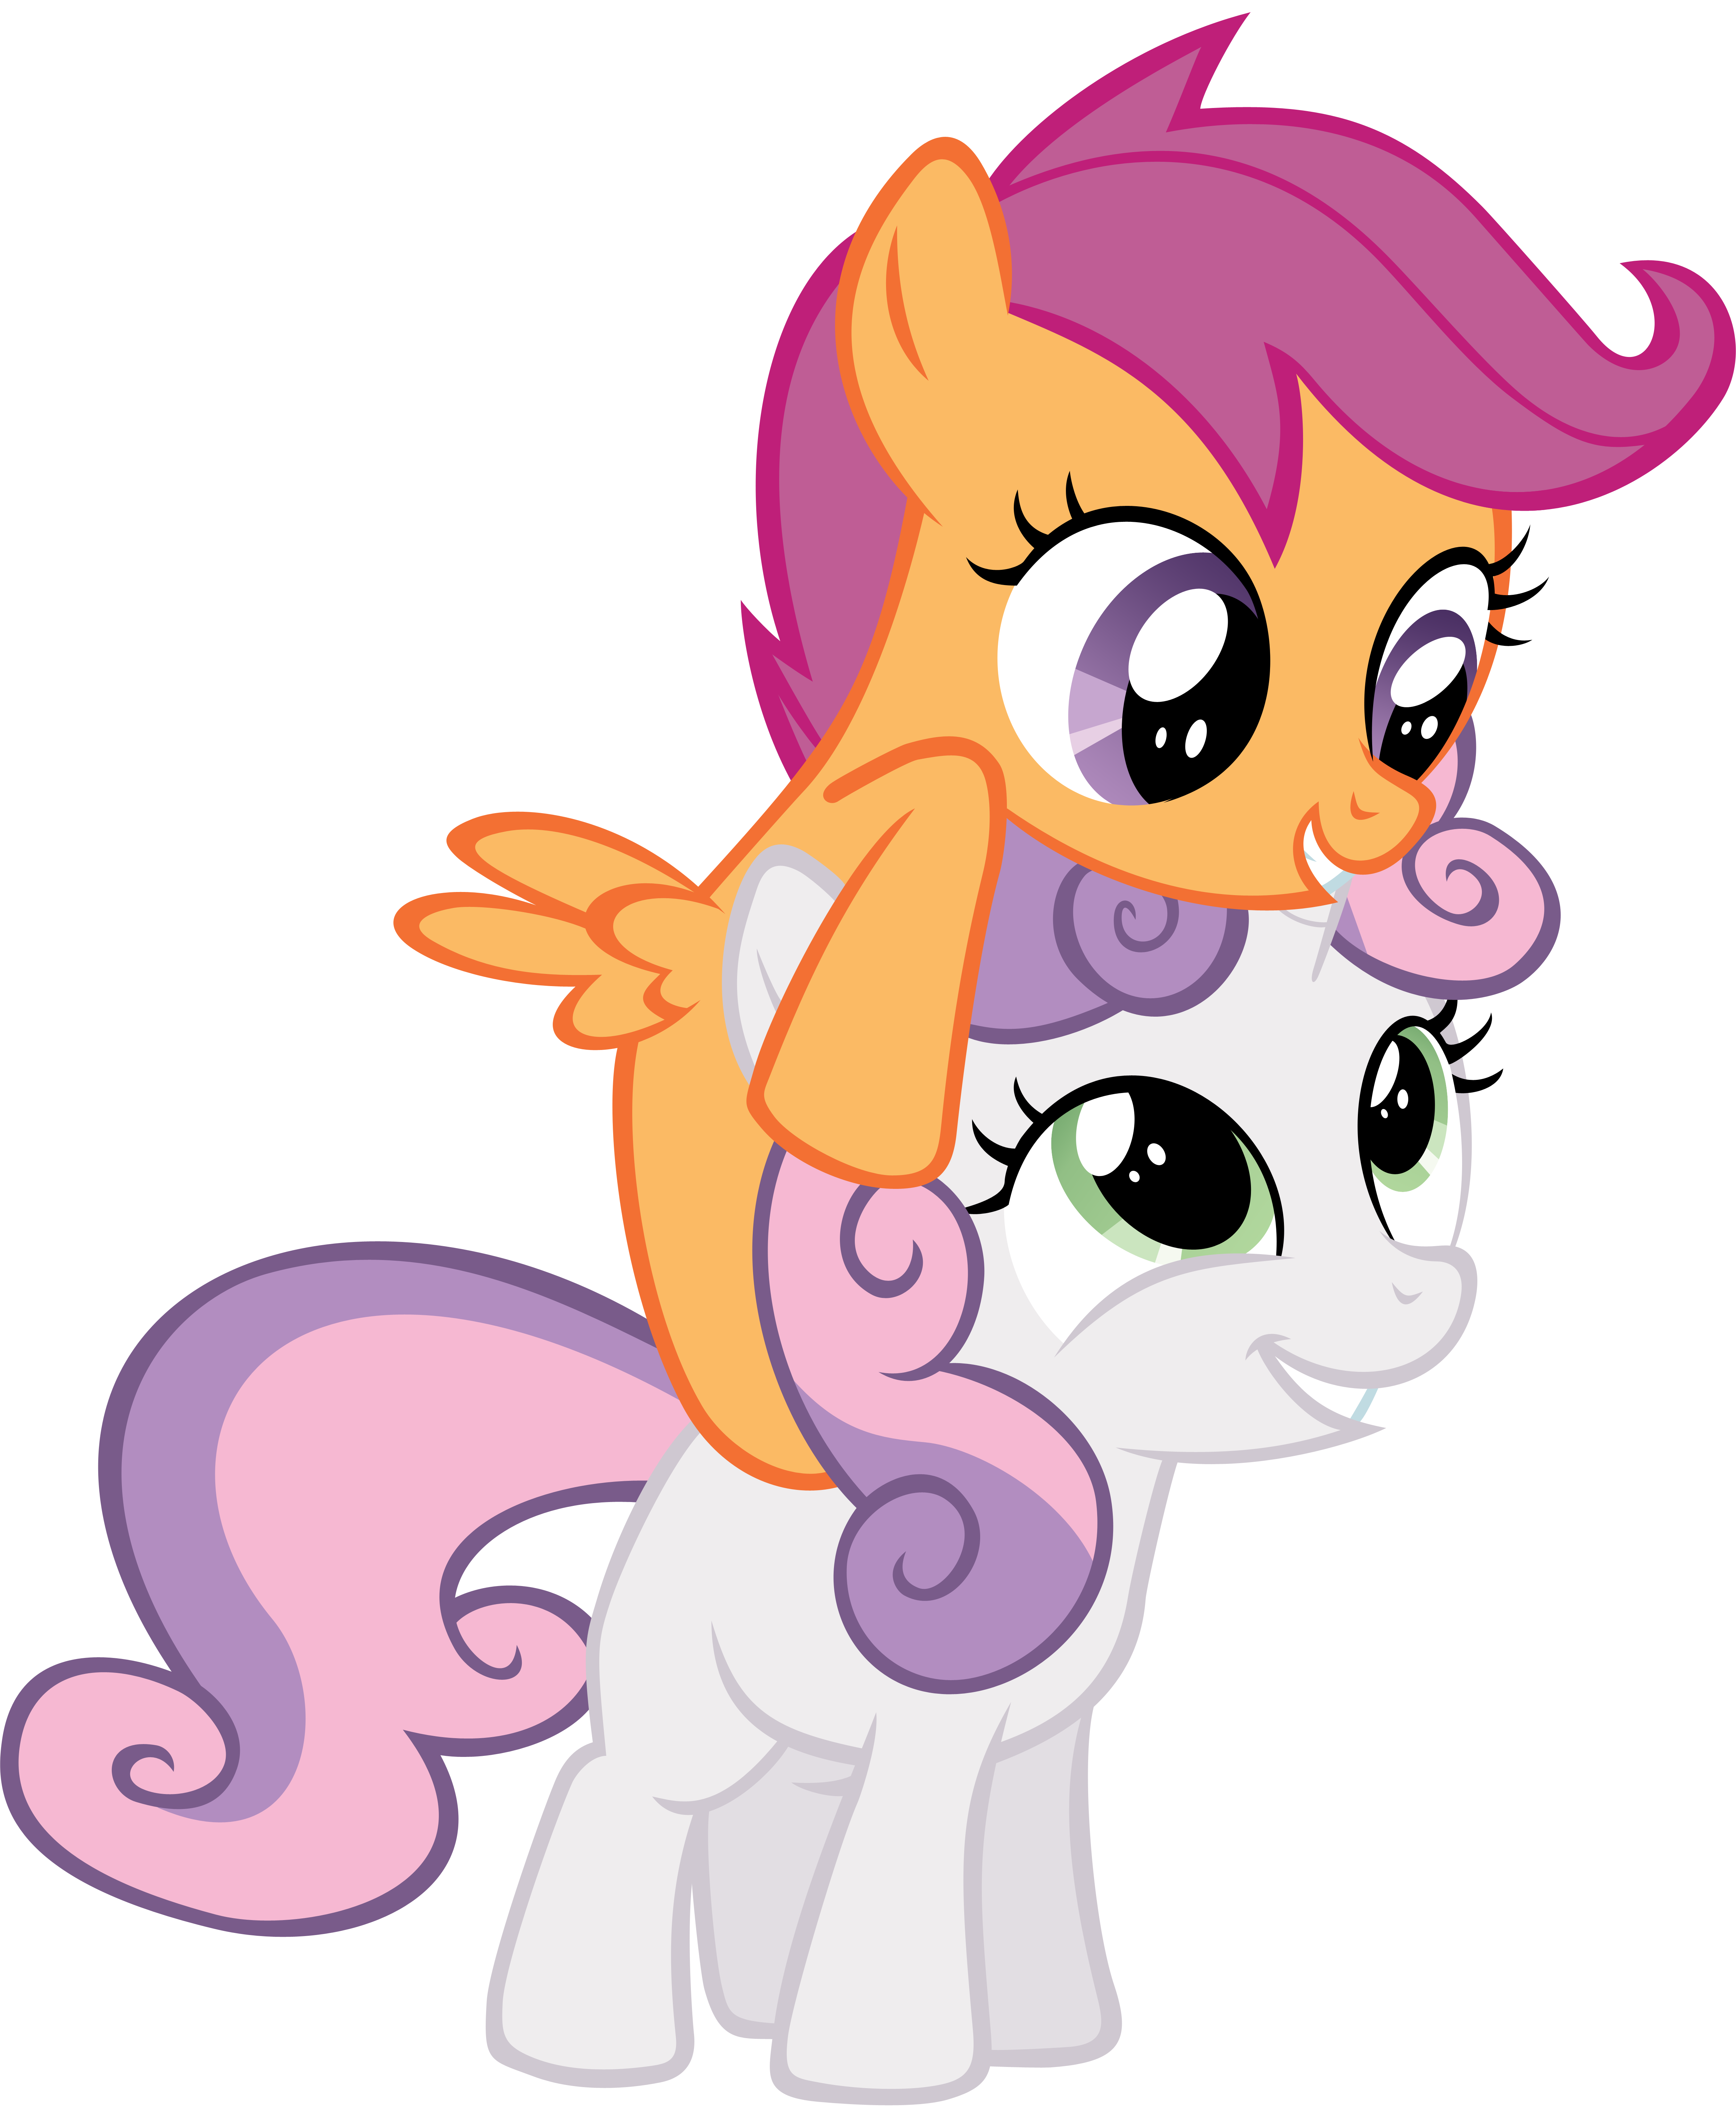 Brother clipart piggy back. Piggyback on sweetie belle